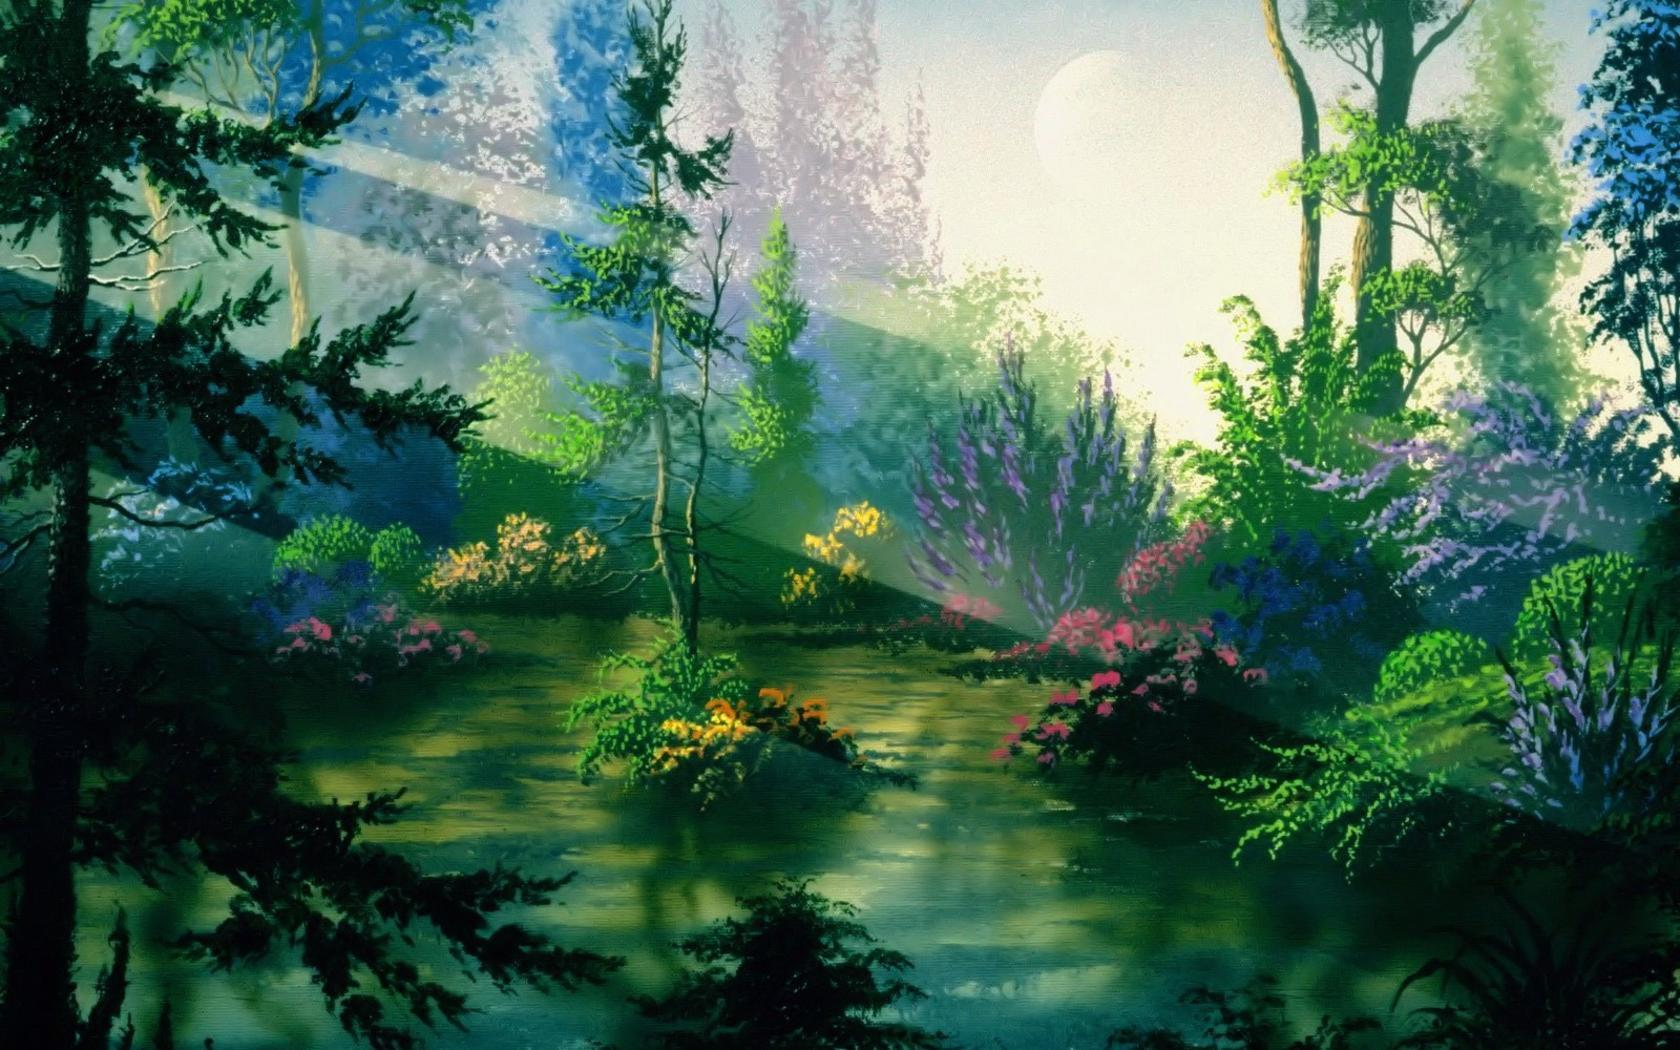 Fantasy nature wallpaper - photo#2